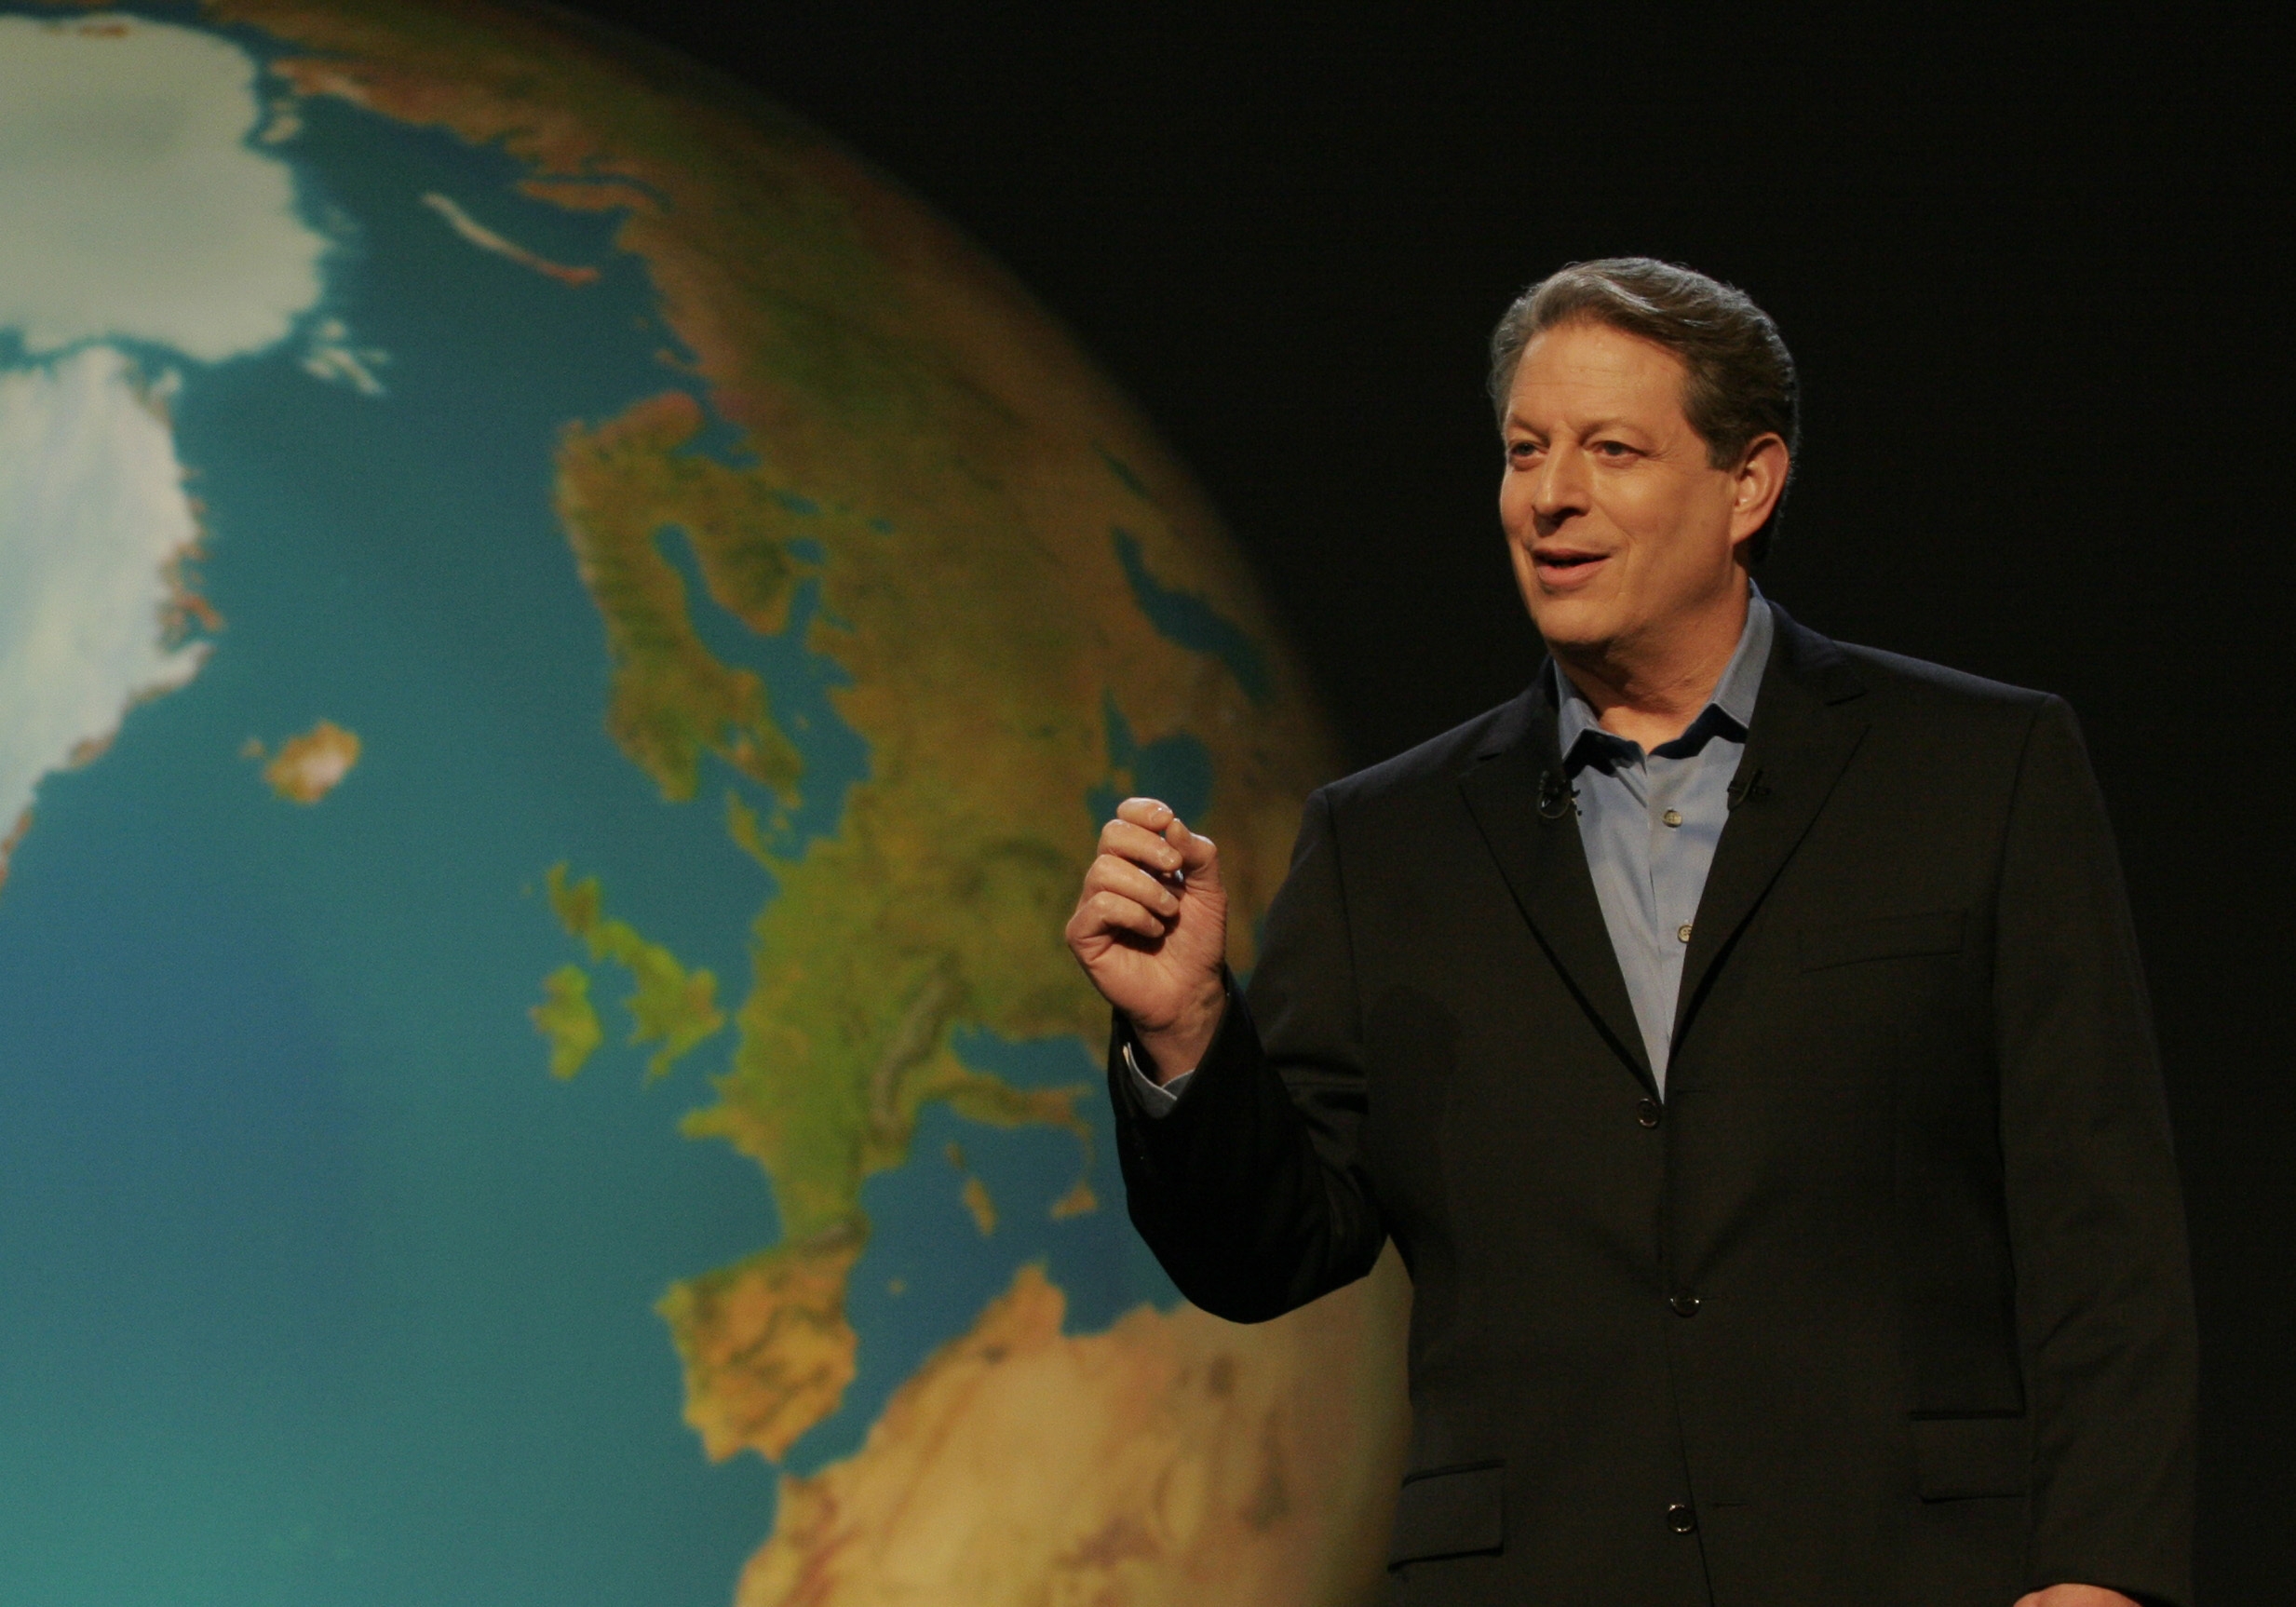 Al gore HD Wallpaper